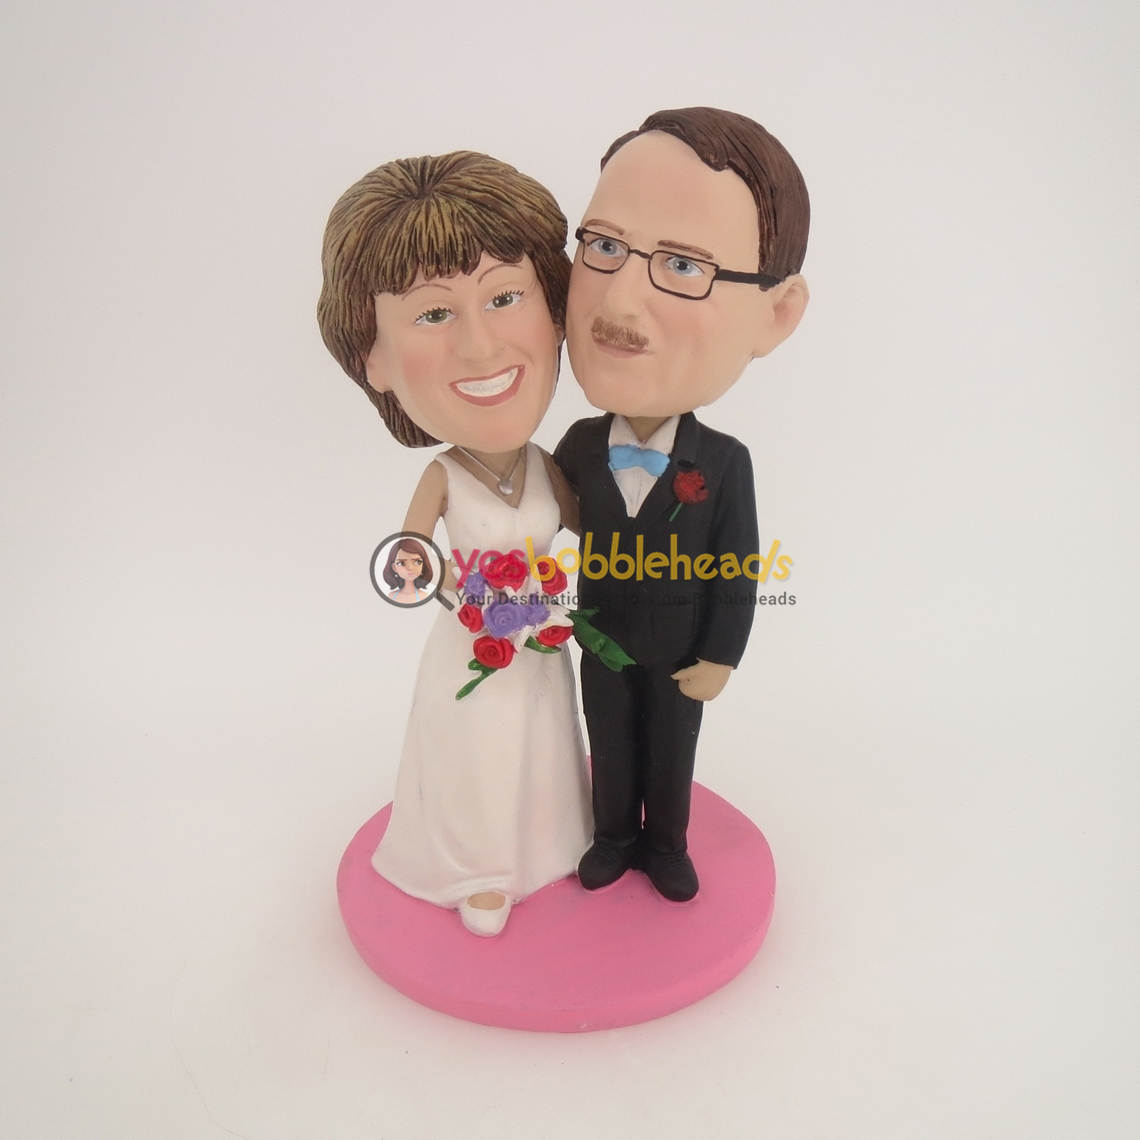 Picture of Custom Bobblehead Doll: Black Suit & White Wedding Dress Arms Crossed Wedding Couple